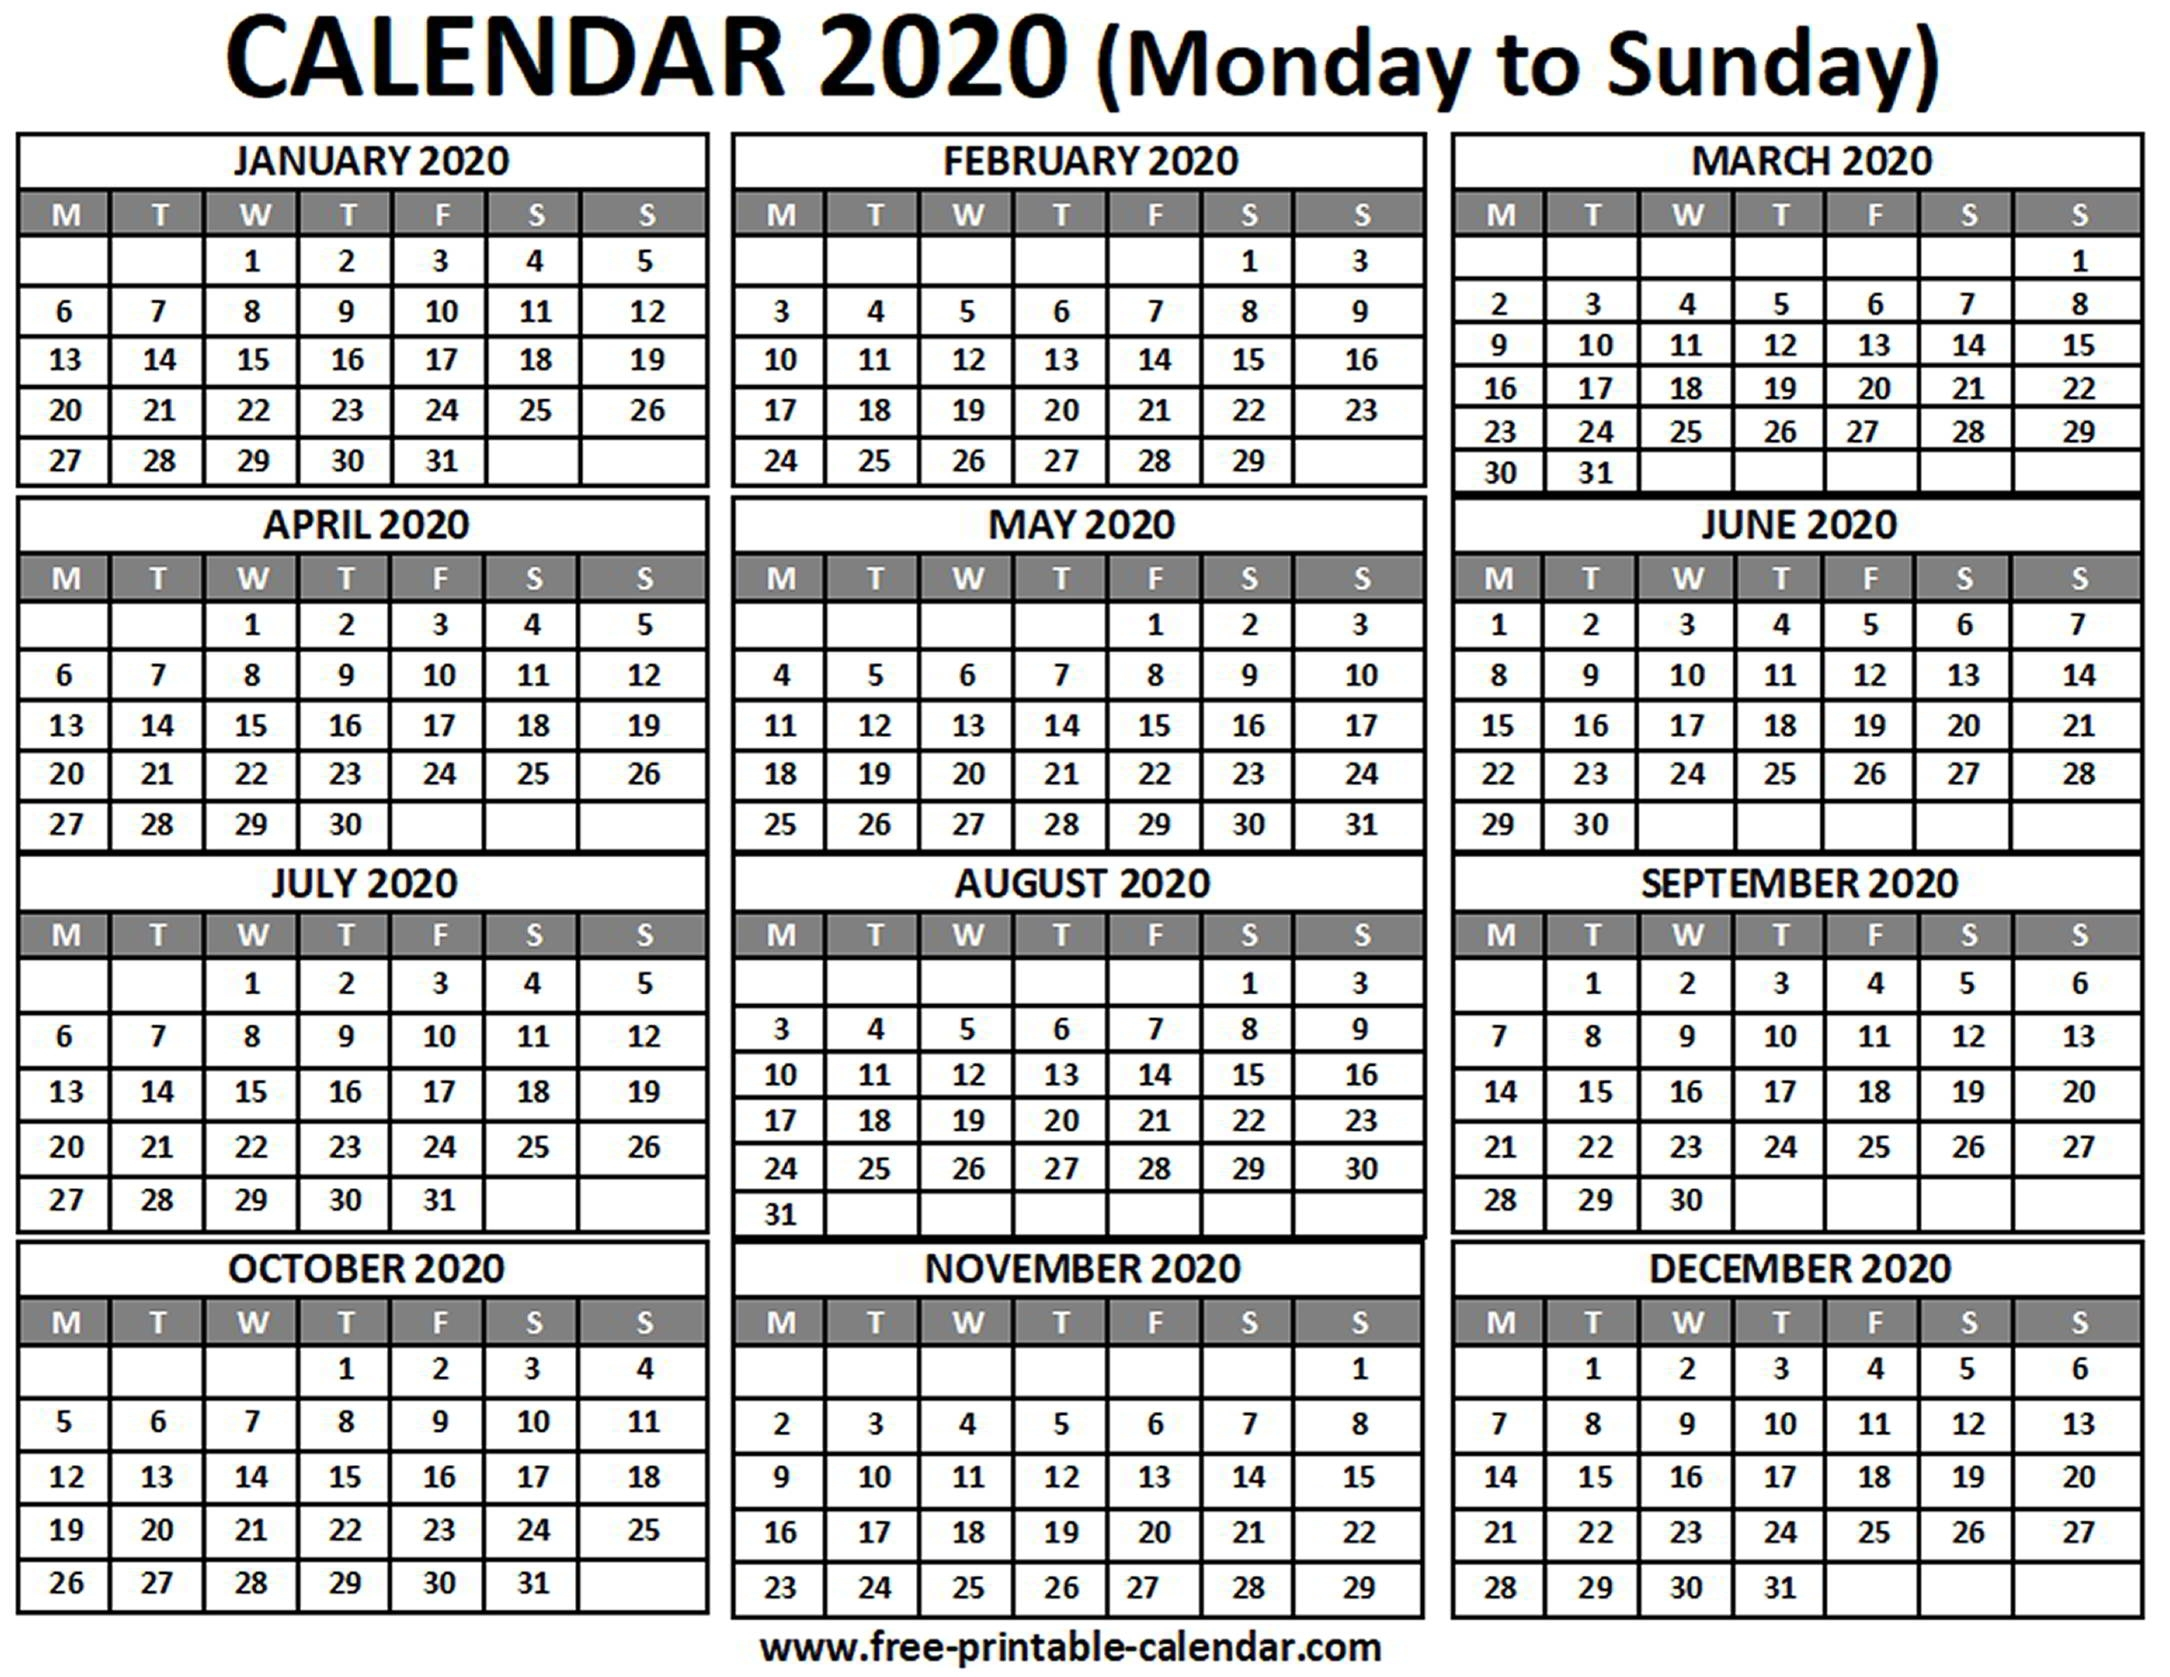 2020 Calendar - Free-Printable-Calendar inside 2020 Monday To Sunday Calendar Printable